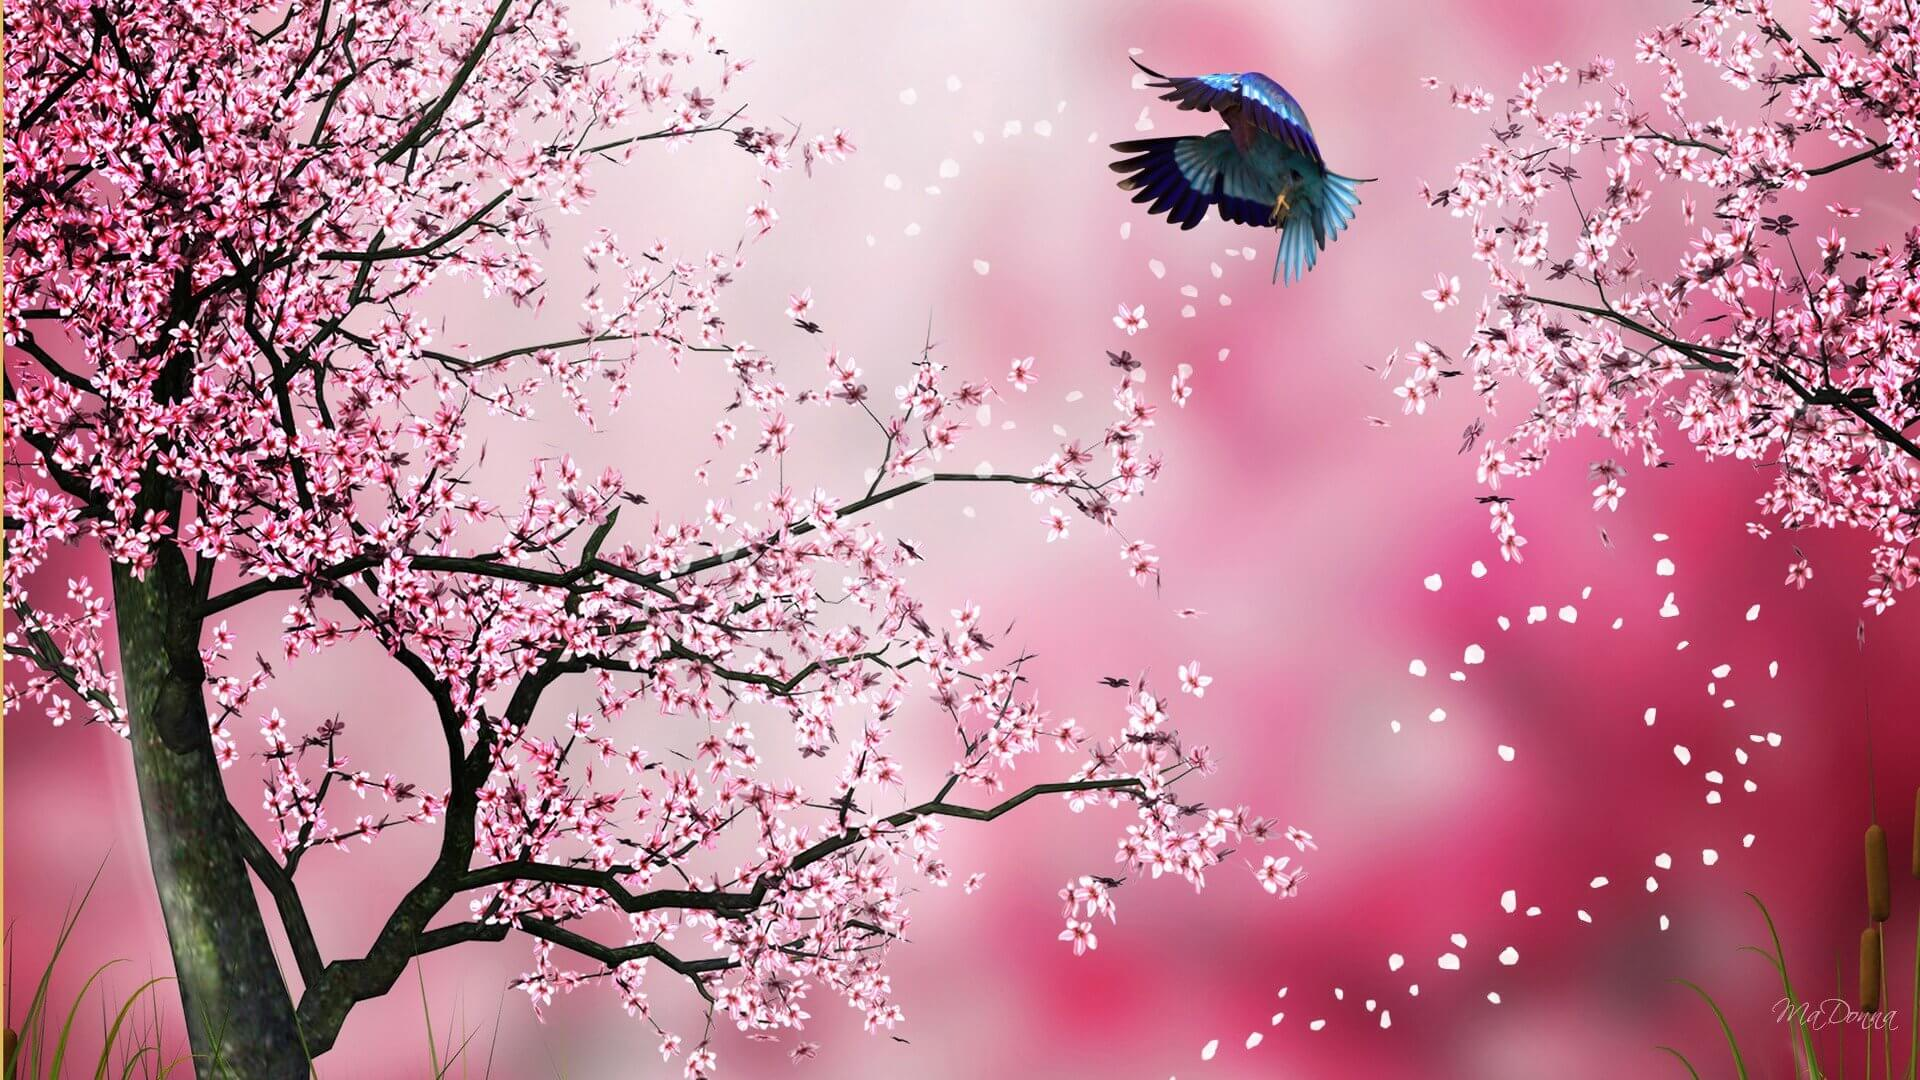 Wallpapers Firefox Persona Flowers Flower Cherry Pixel Abstract